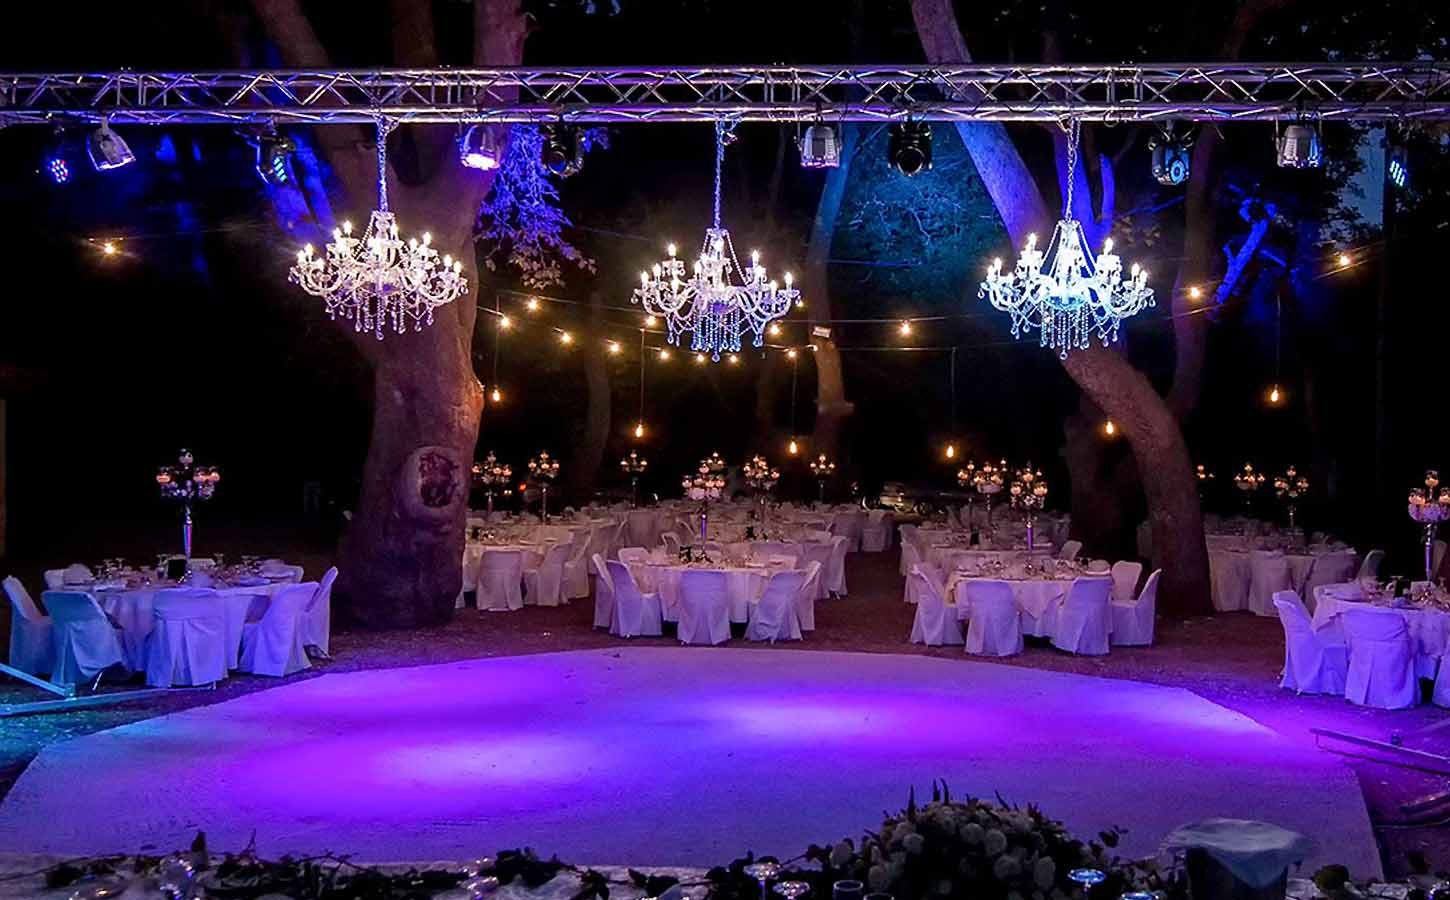 forest-wedding-by-diamond-events-event-planning-company